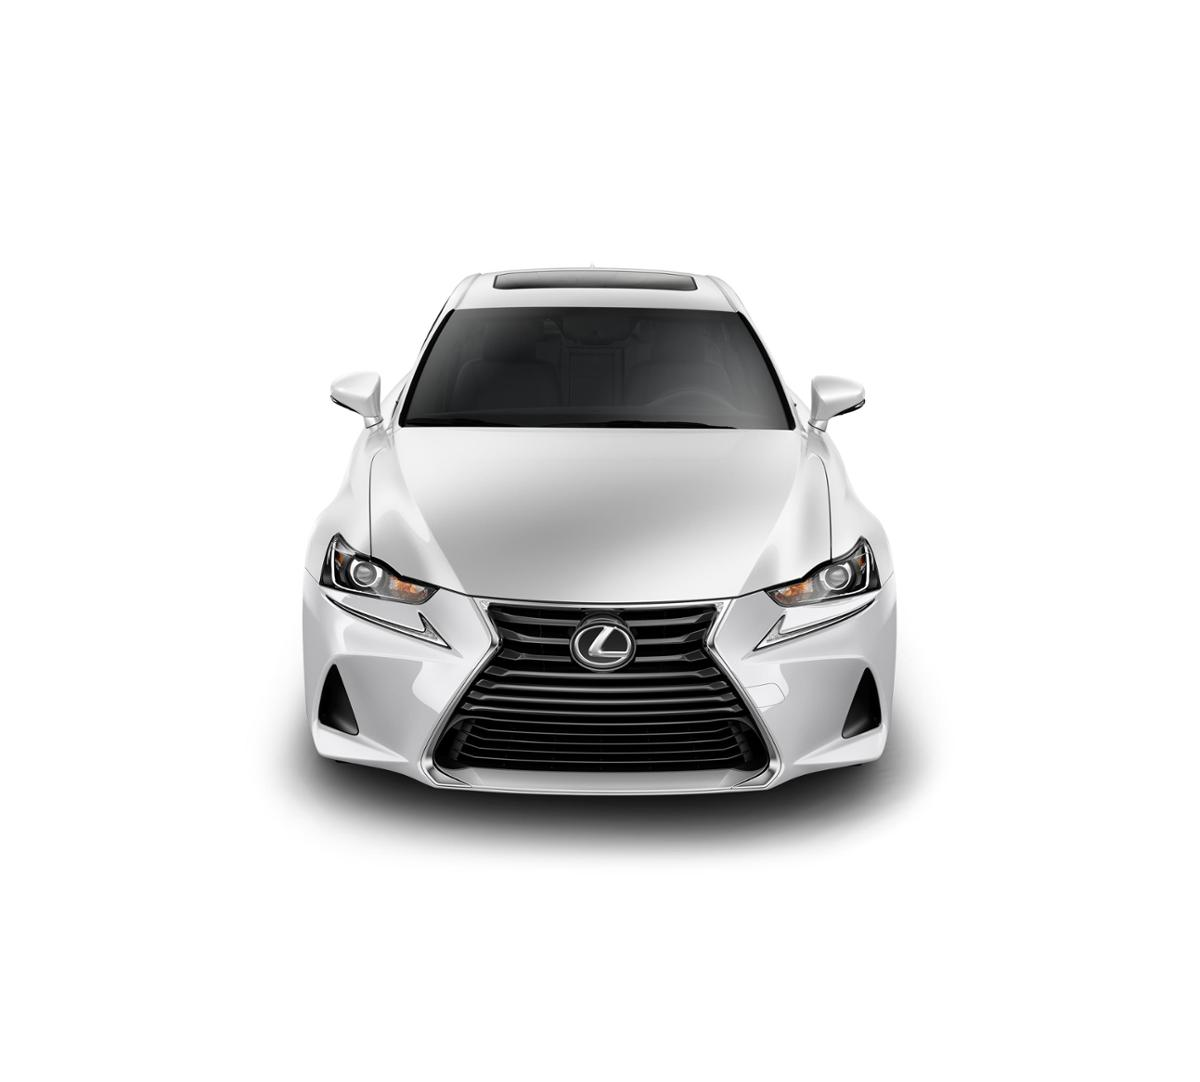 2019 Lexus IS 300 At Lexus Of Orlando